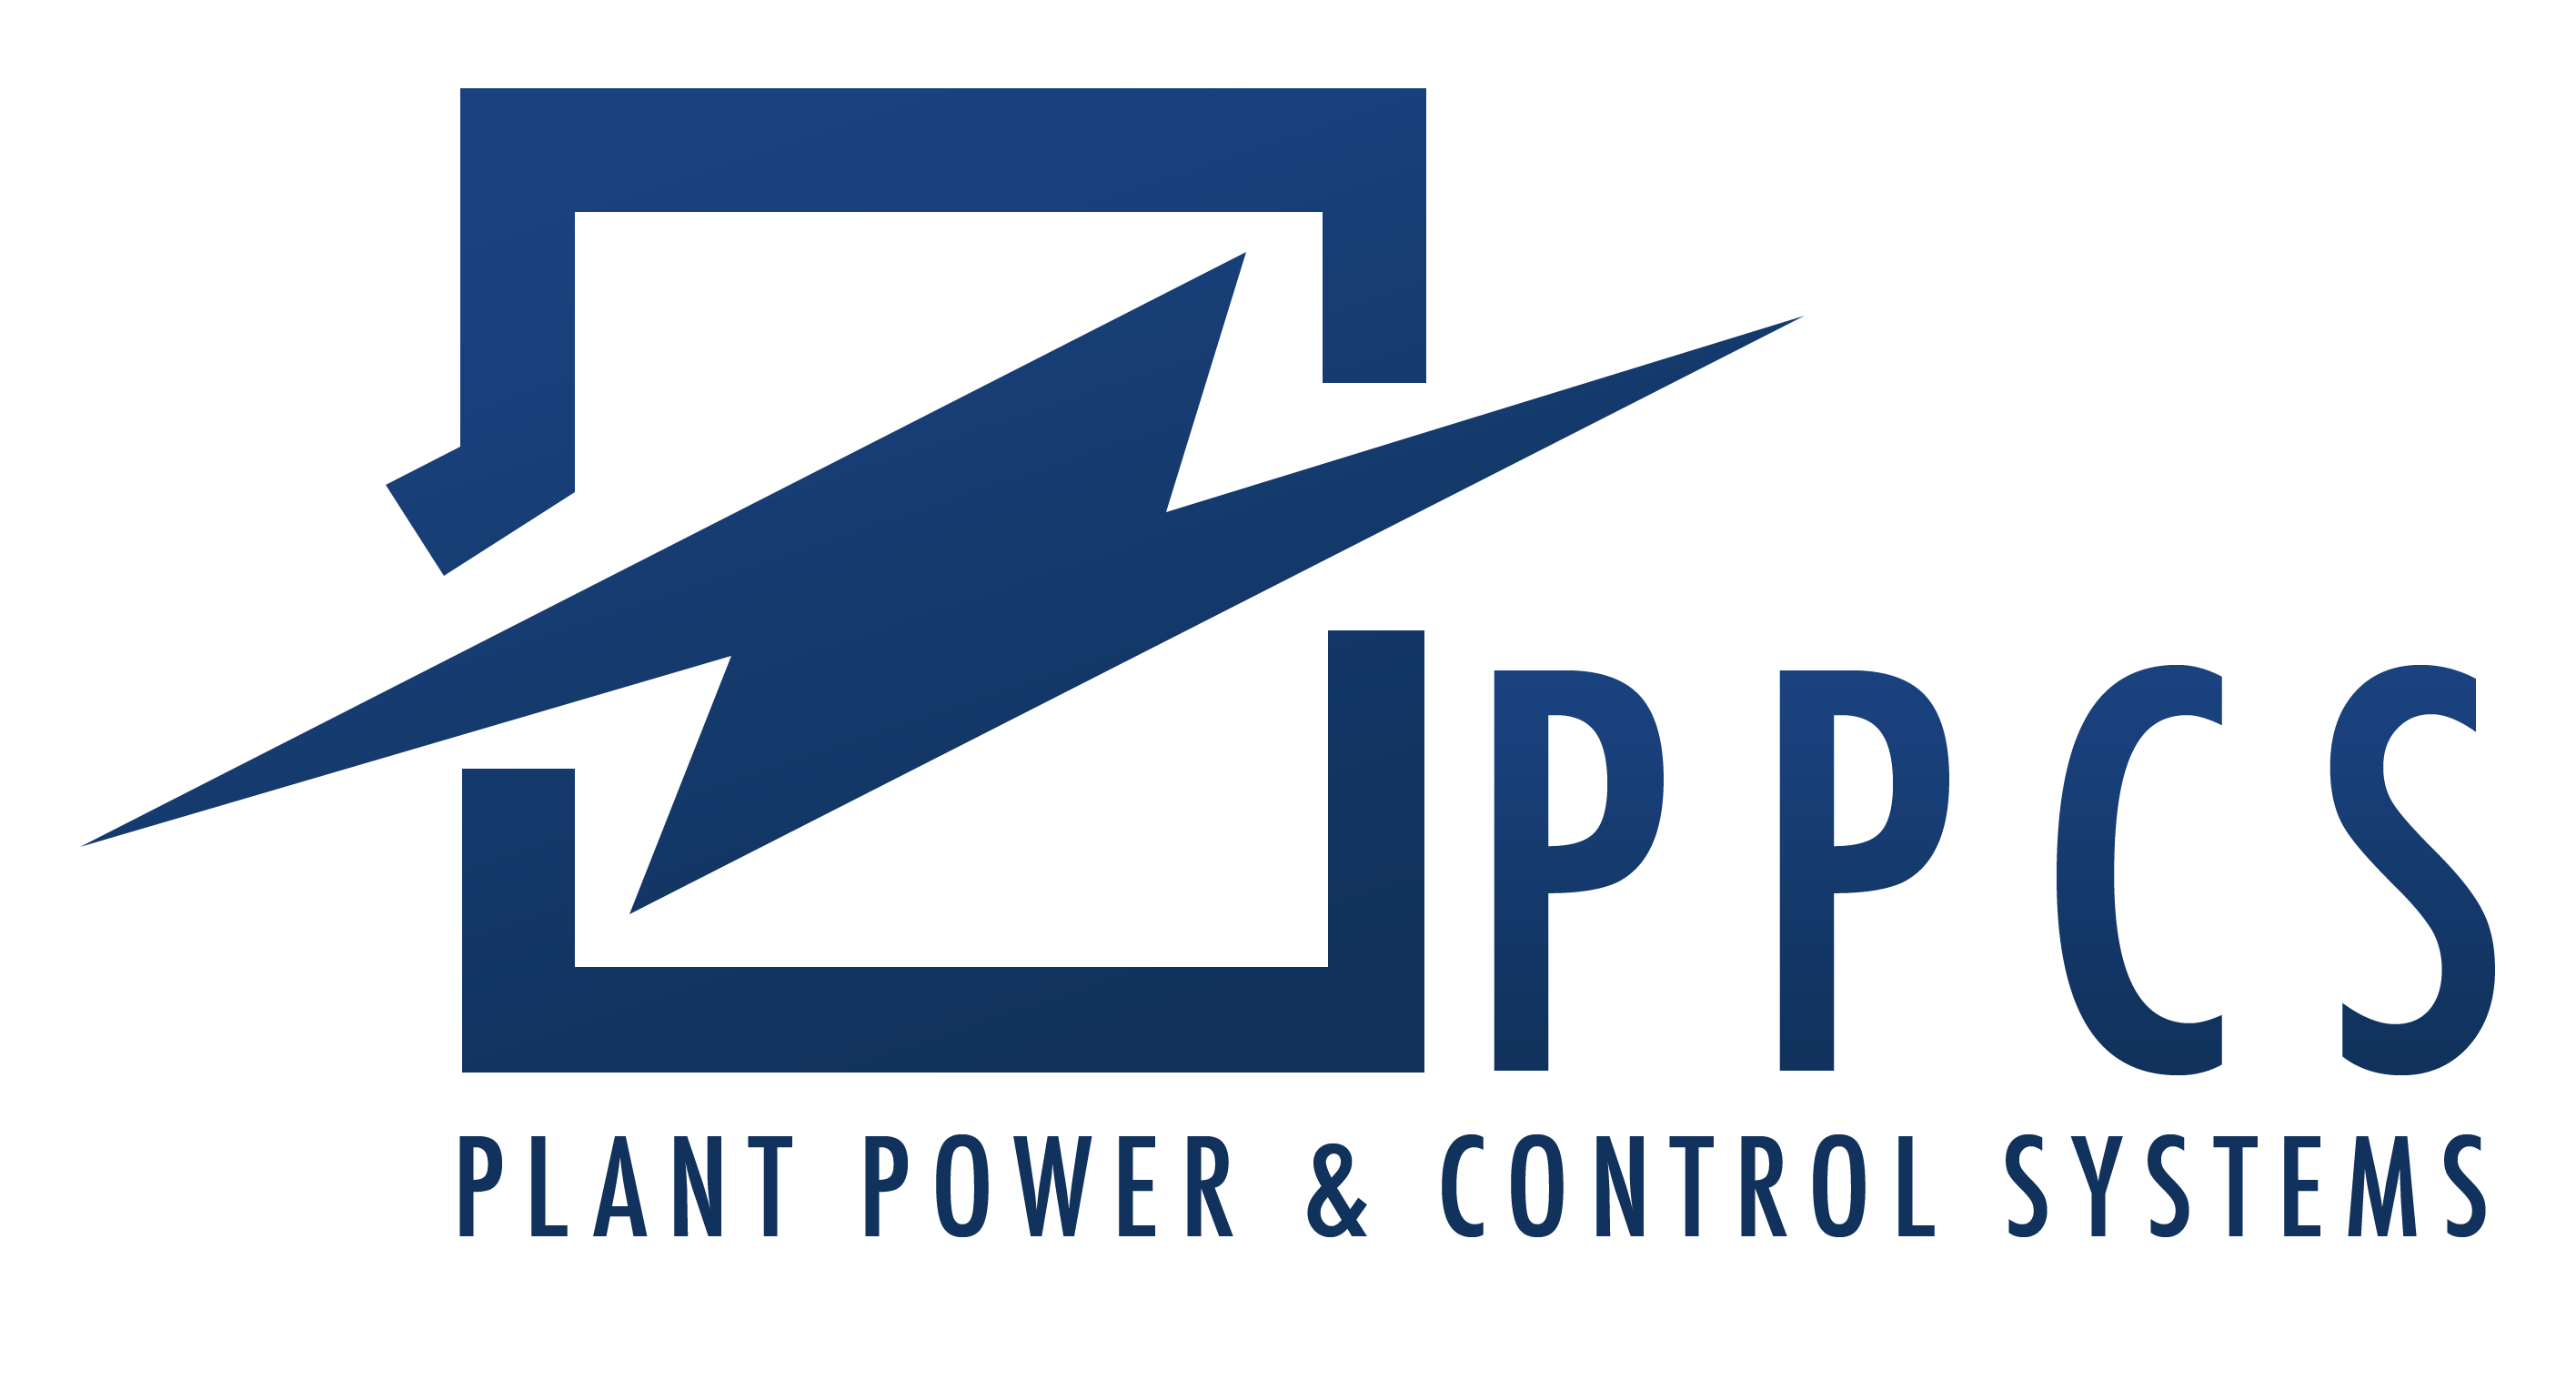 Plant Power & Control Systems